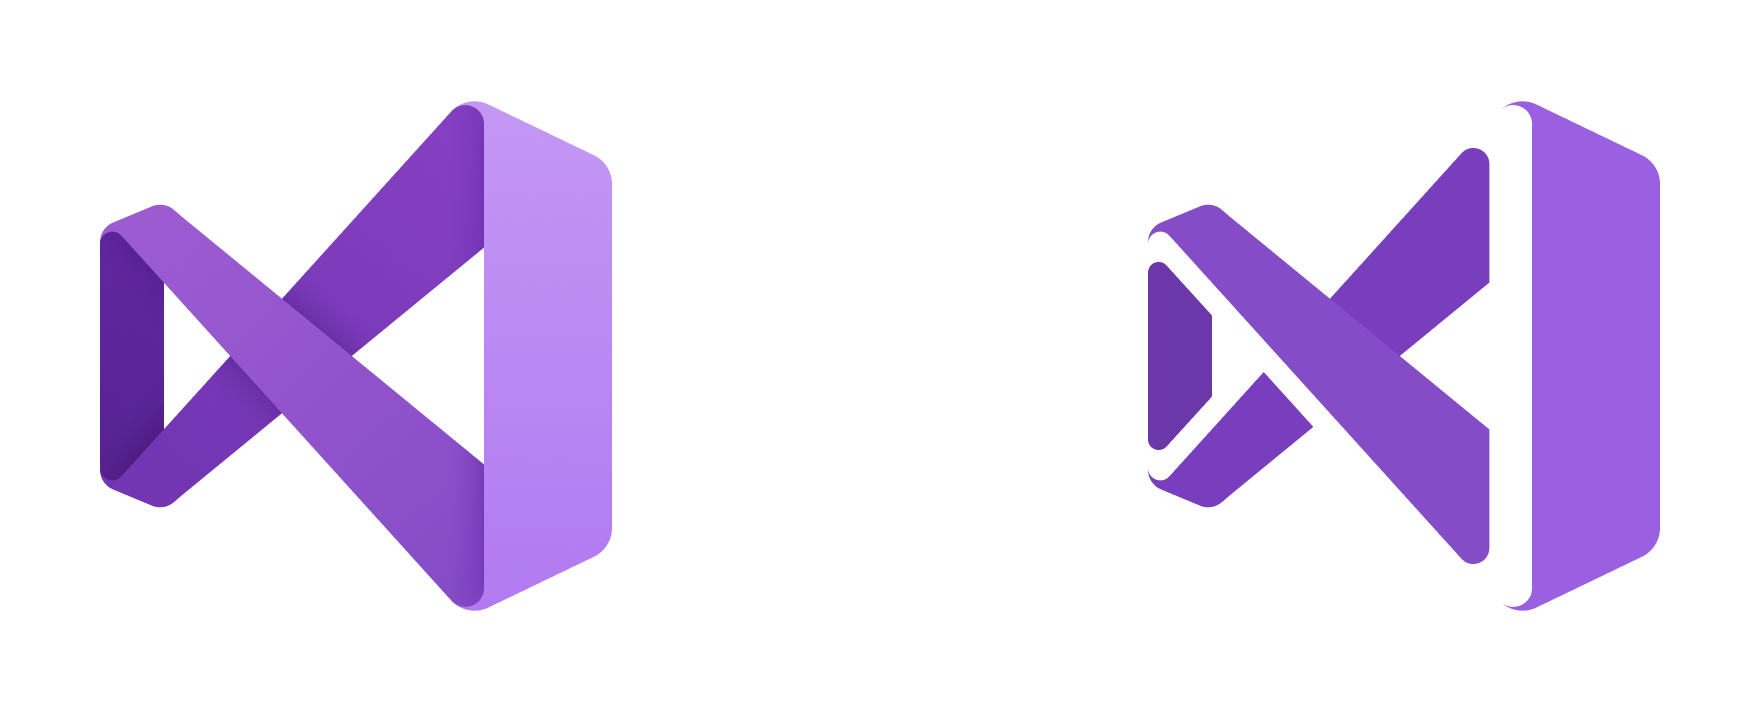 The Visual Studio 2019 release icon (left) next to the Visual Studio 2019 Preview icon (right)